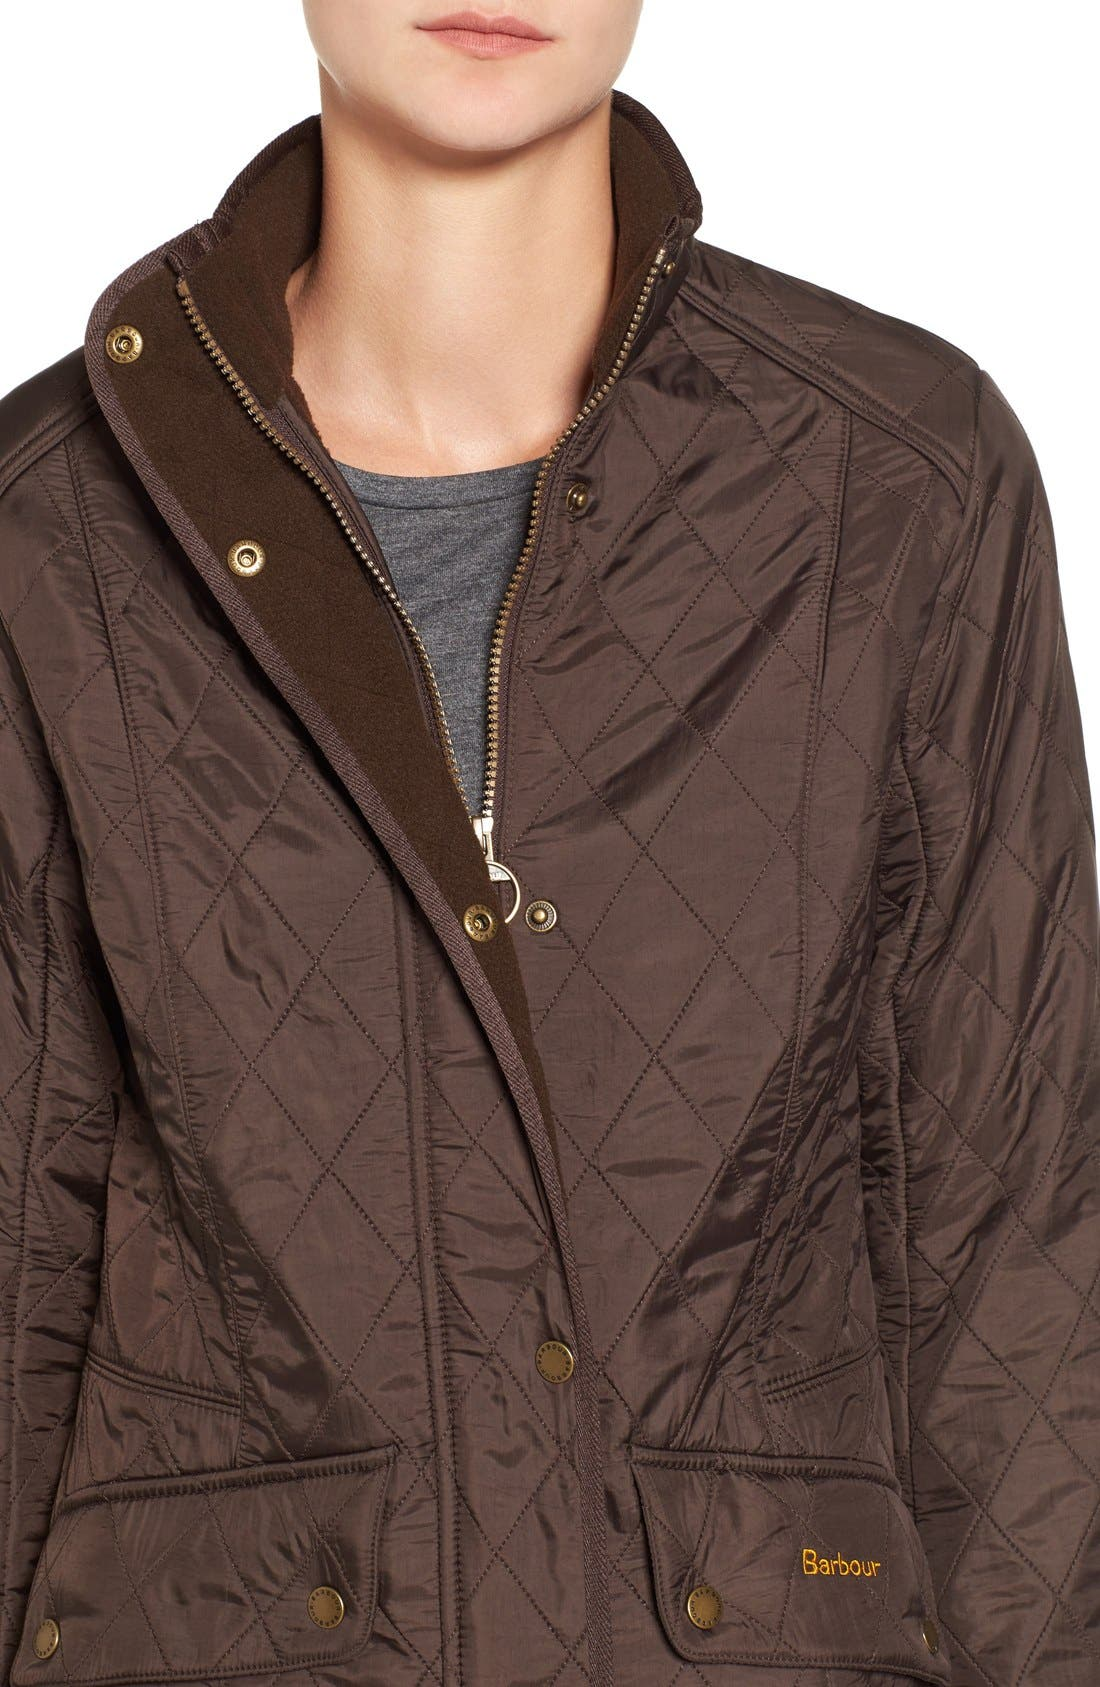 'Cavalry' Quilted Jacket,                             Alternate thumbnail 51, color,